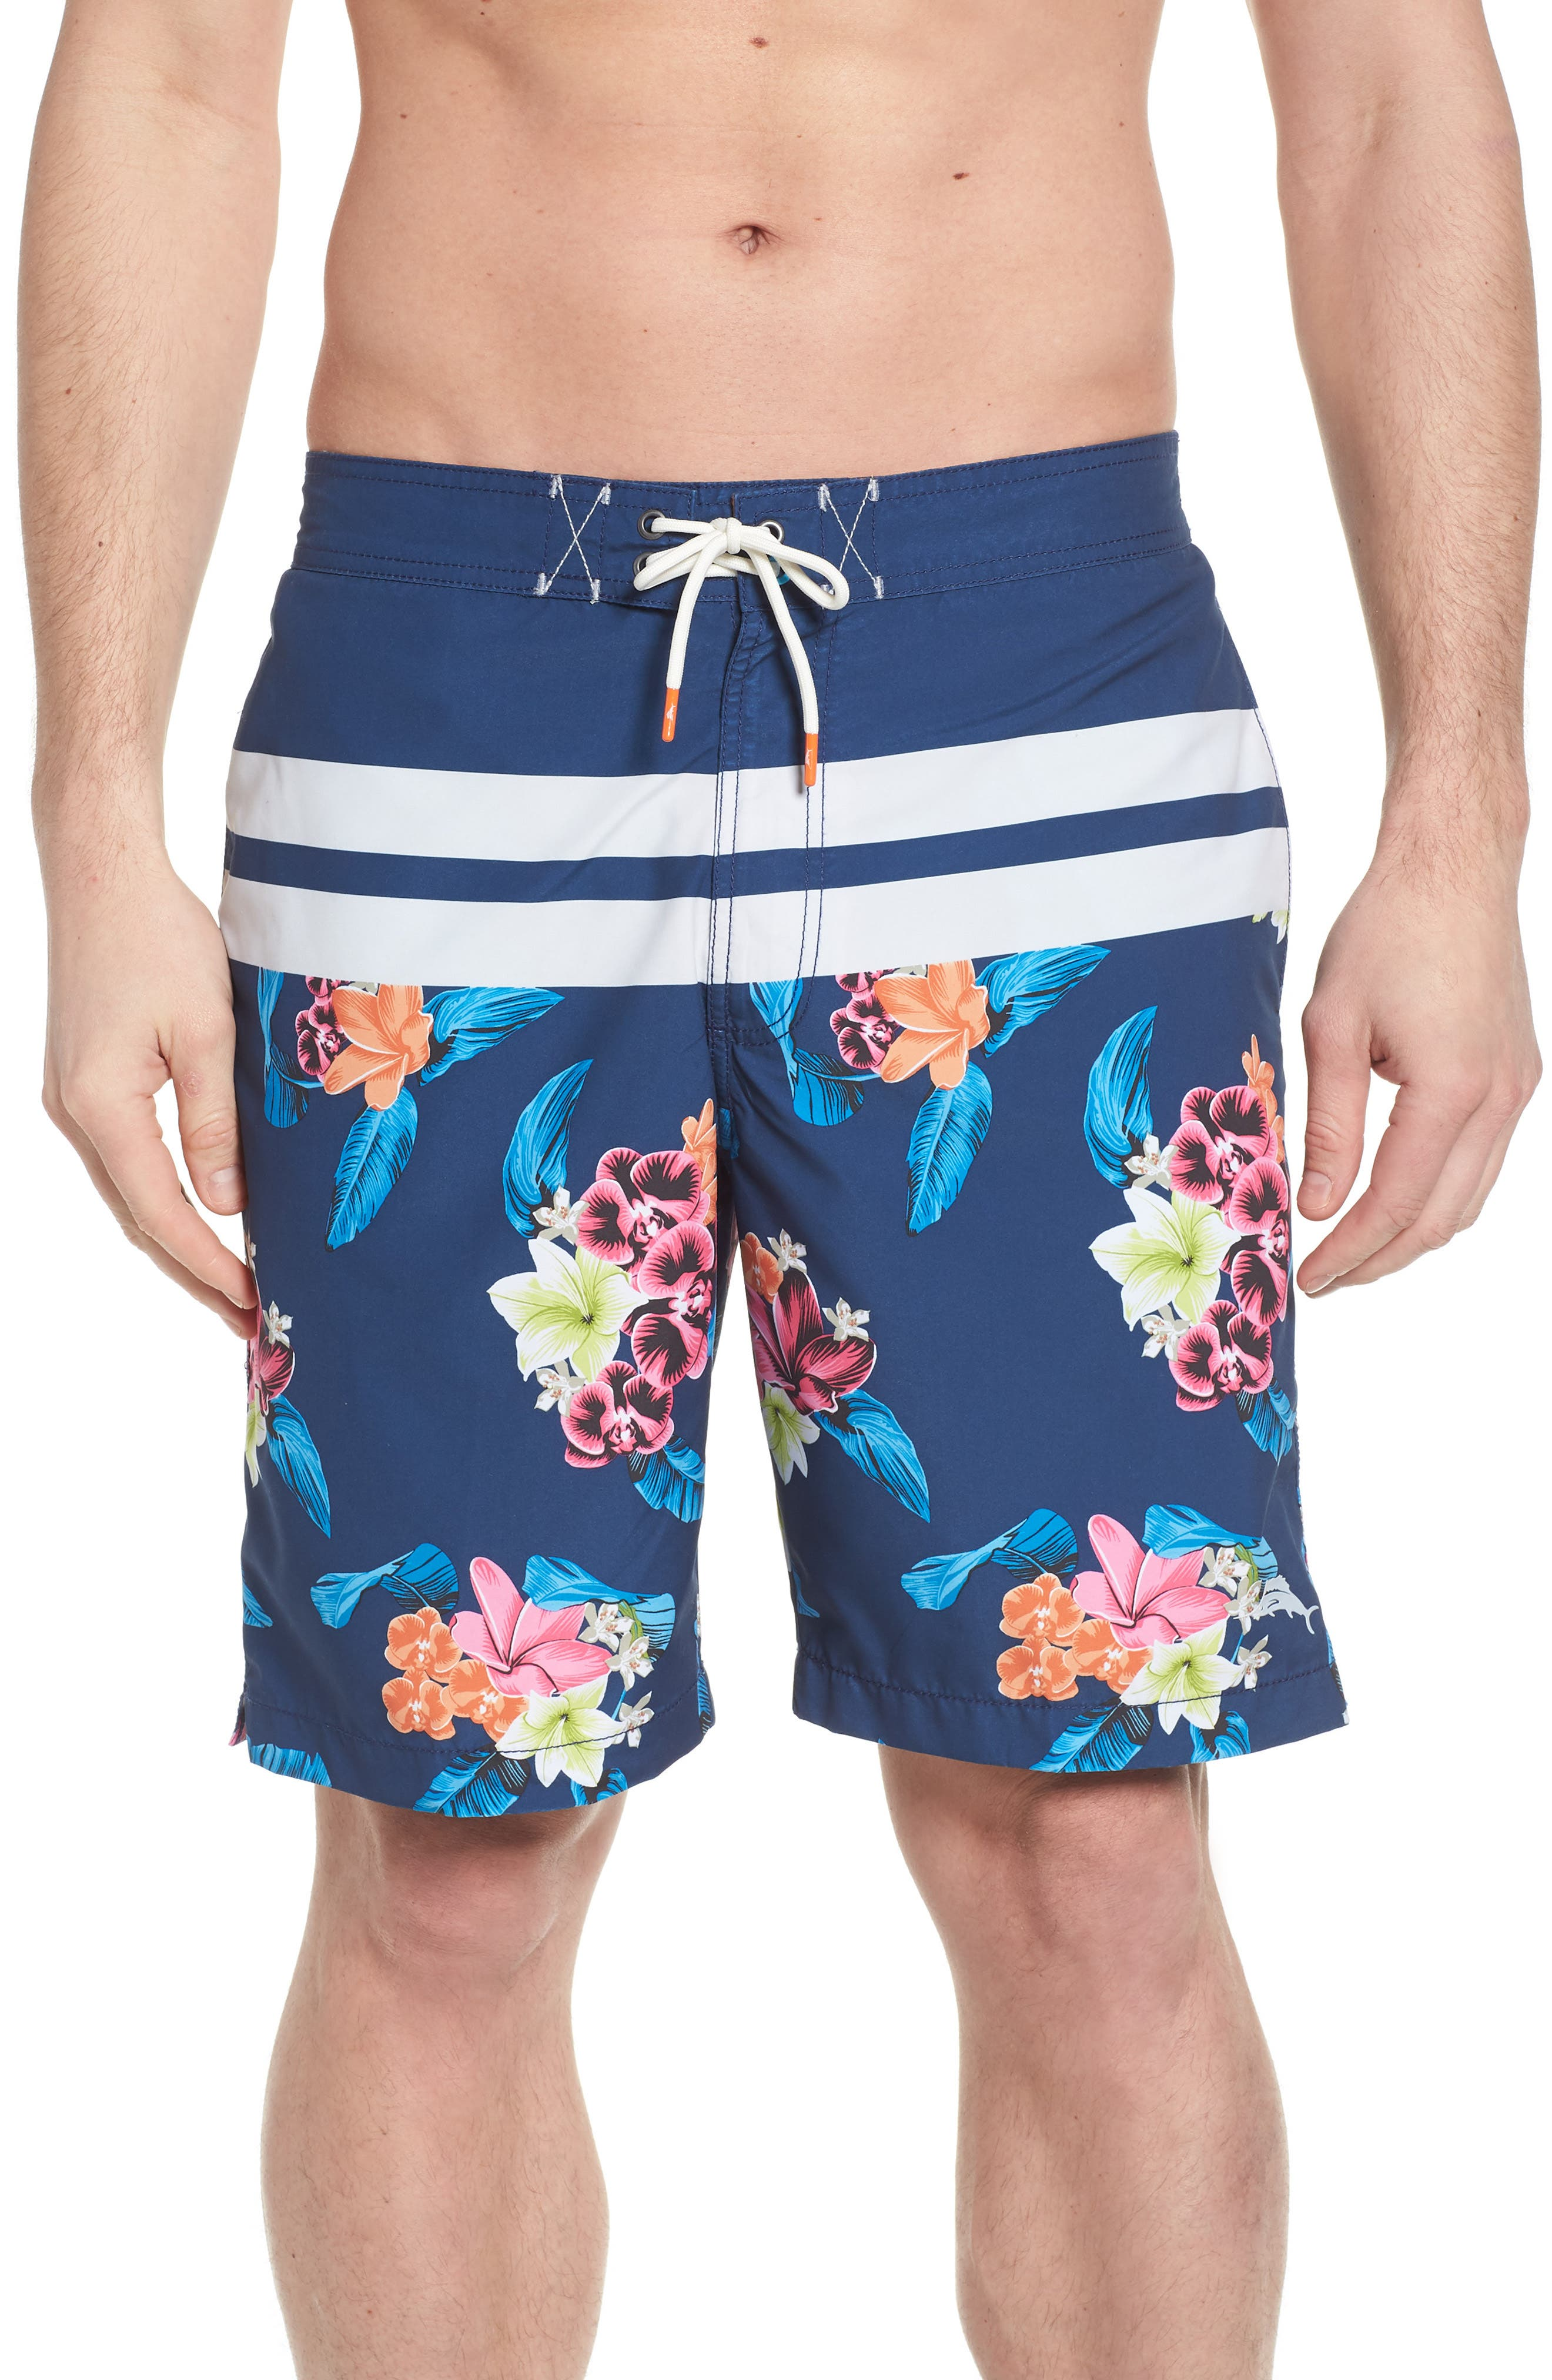 Baja Saltwater Blooms Board Shorts,                             Main thumbnail 1, color,                             Throne Blue